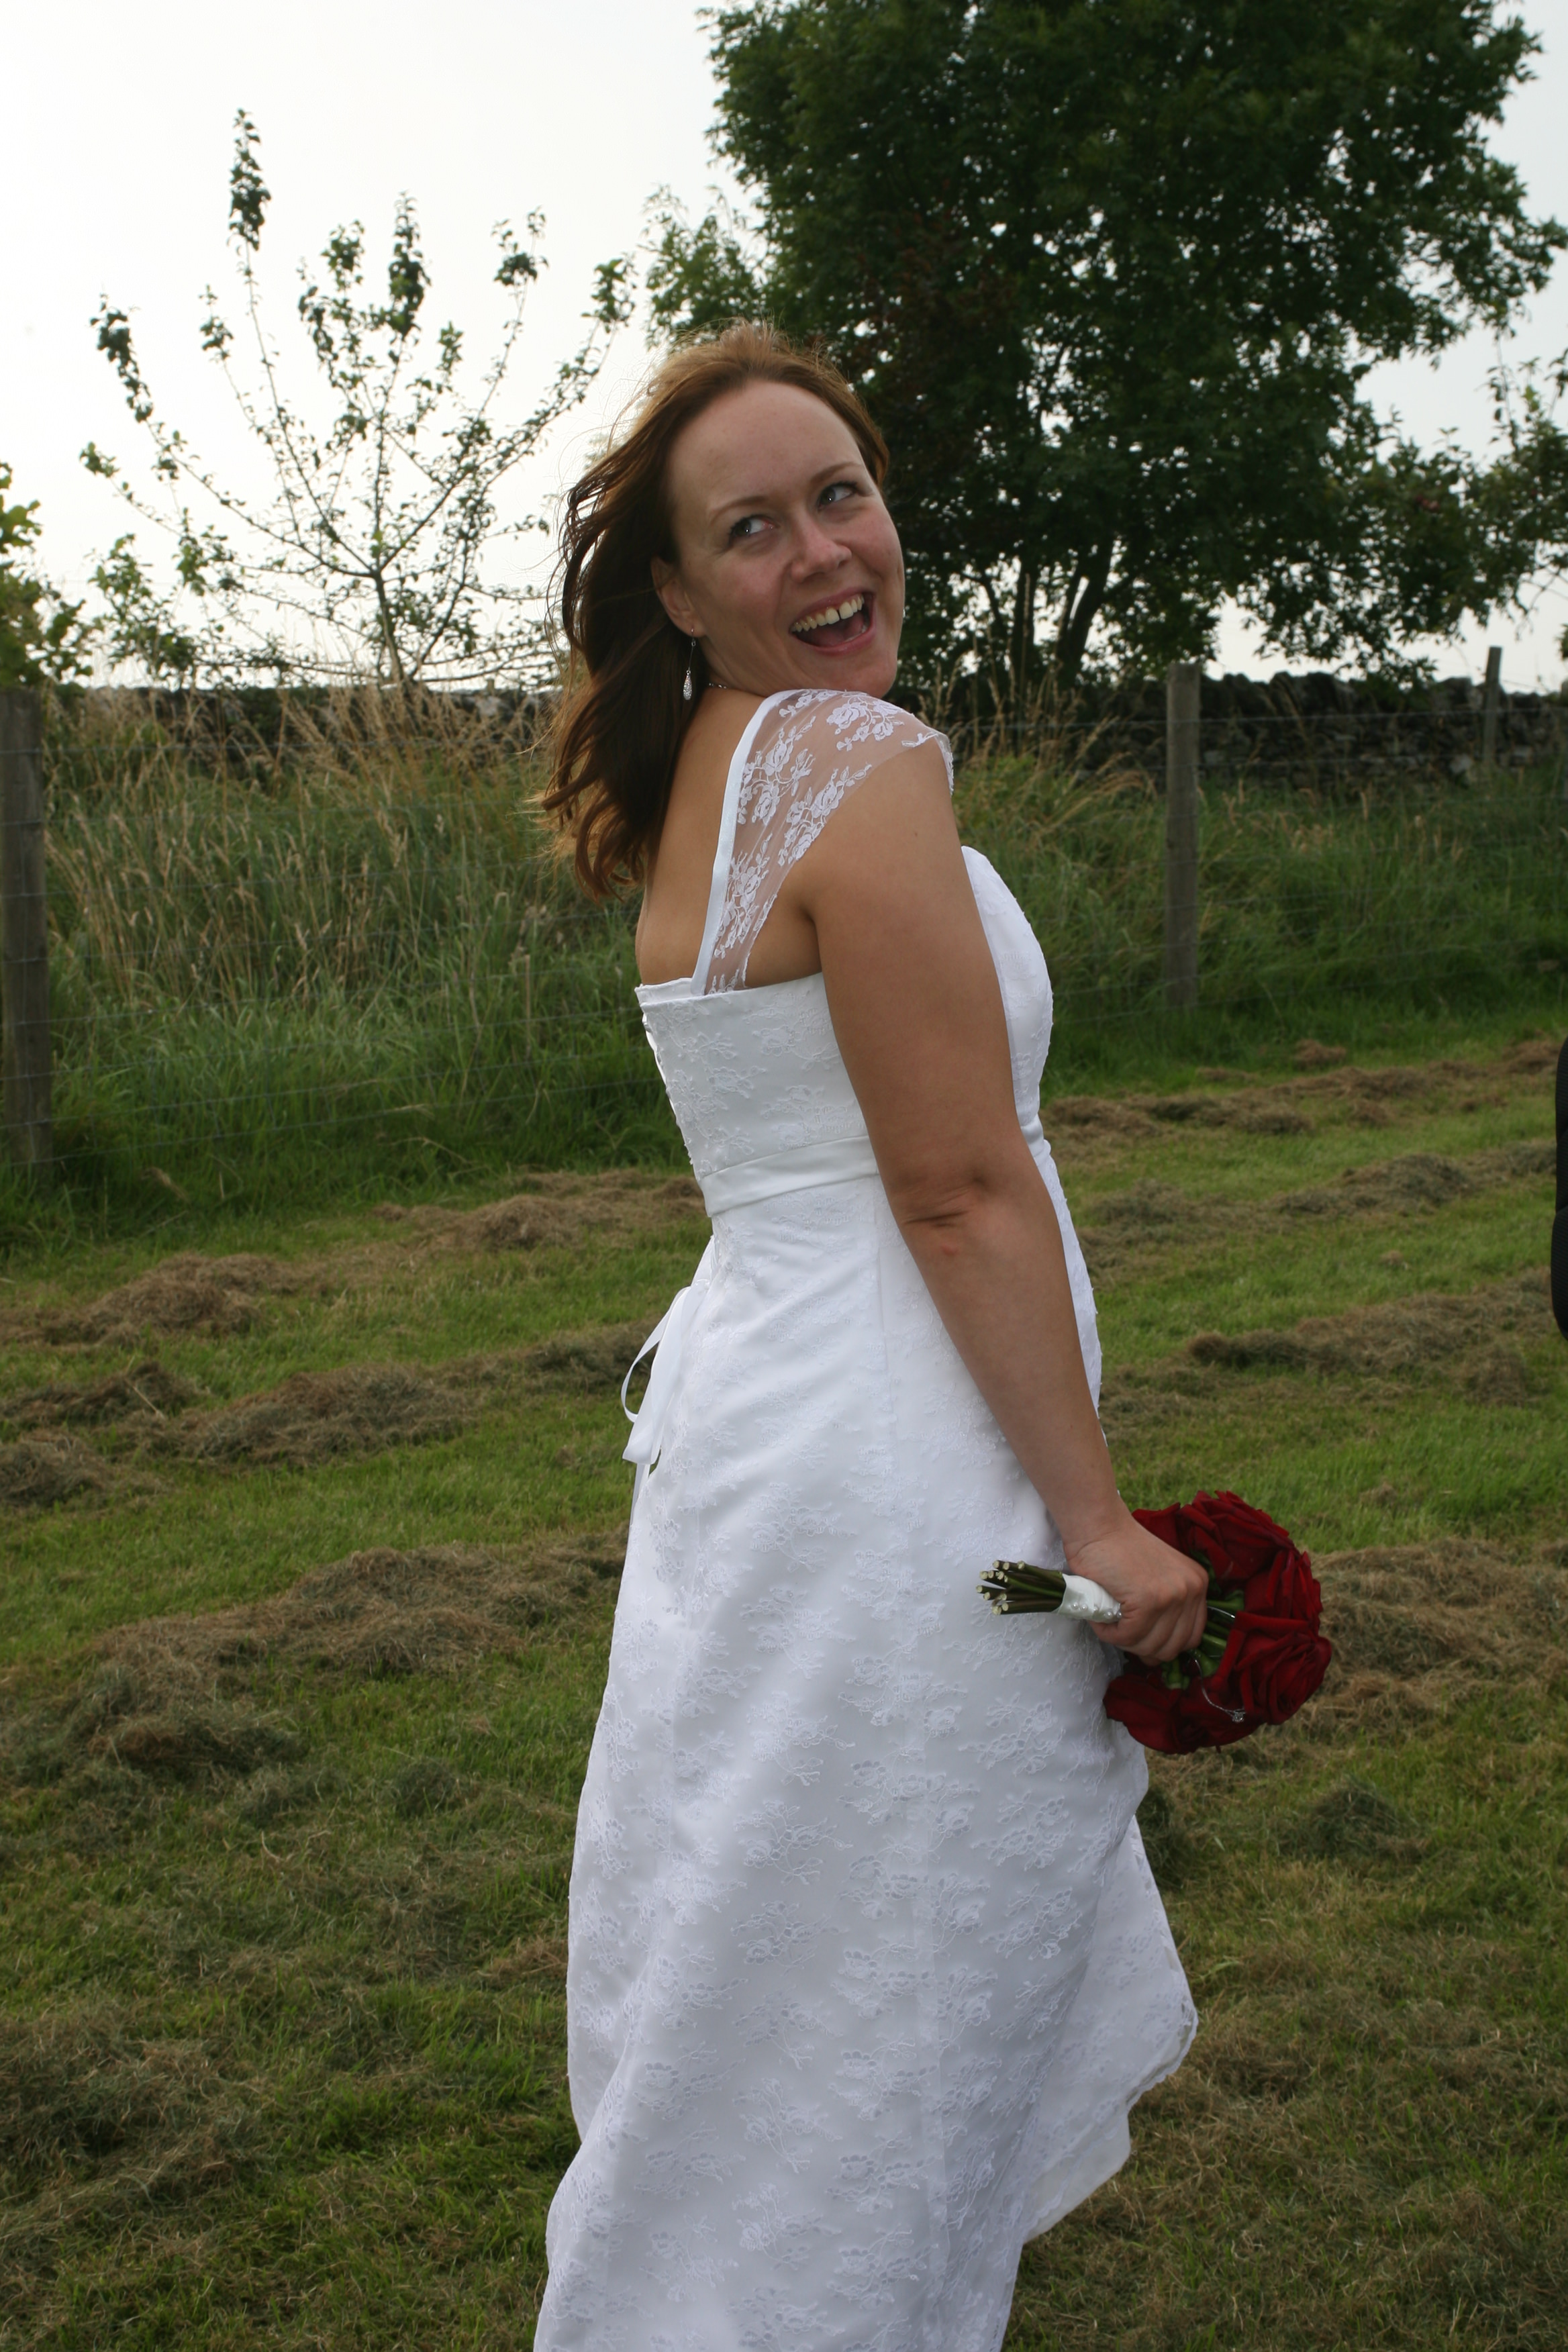 Quirky bespoke wedding gown